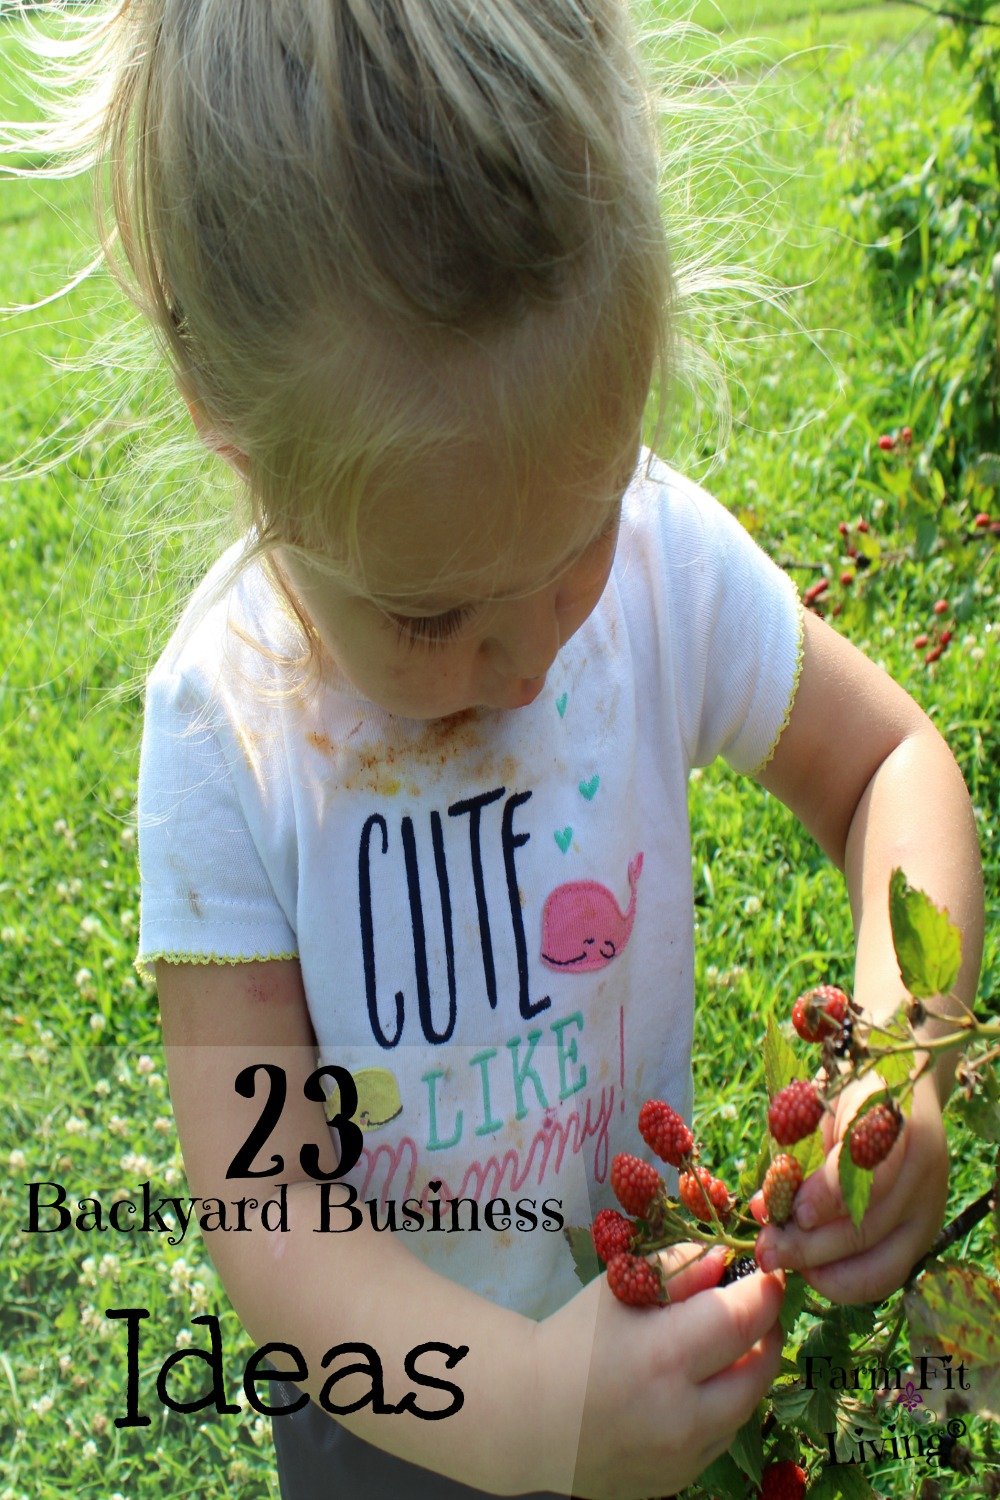 23 Backyard Business Ideas To Create From Your Hobbies Farm Fit Living for Backyard Business Ideas